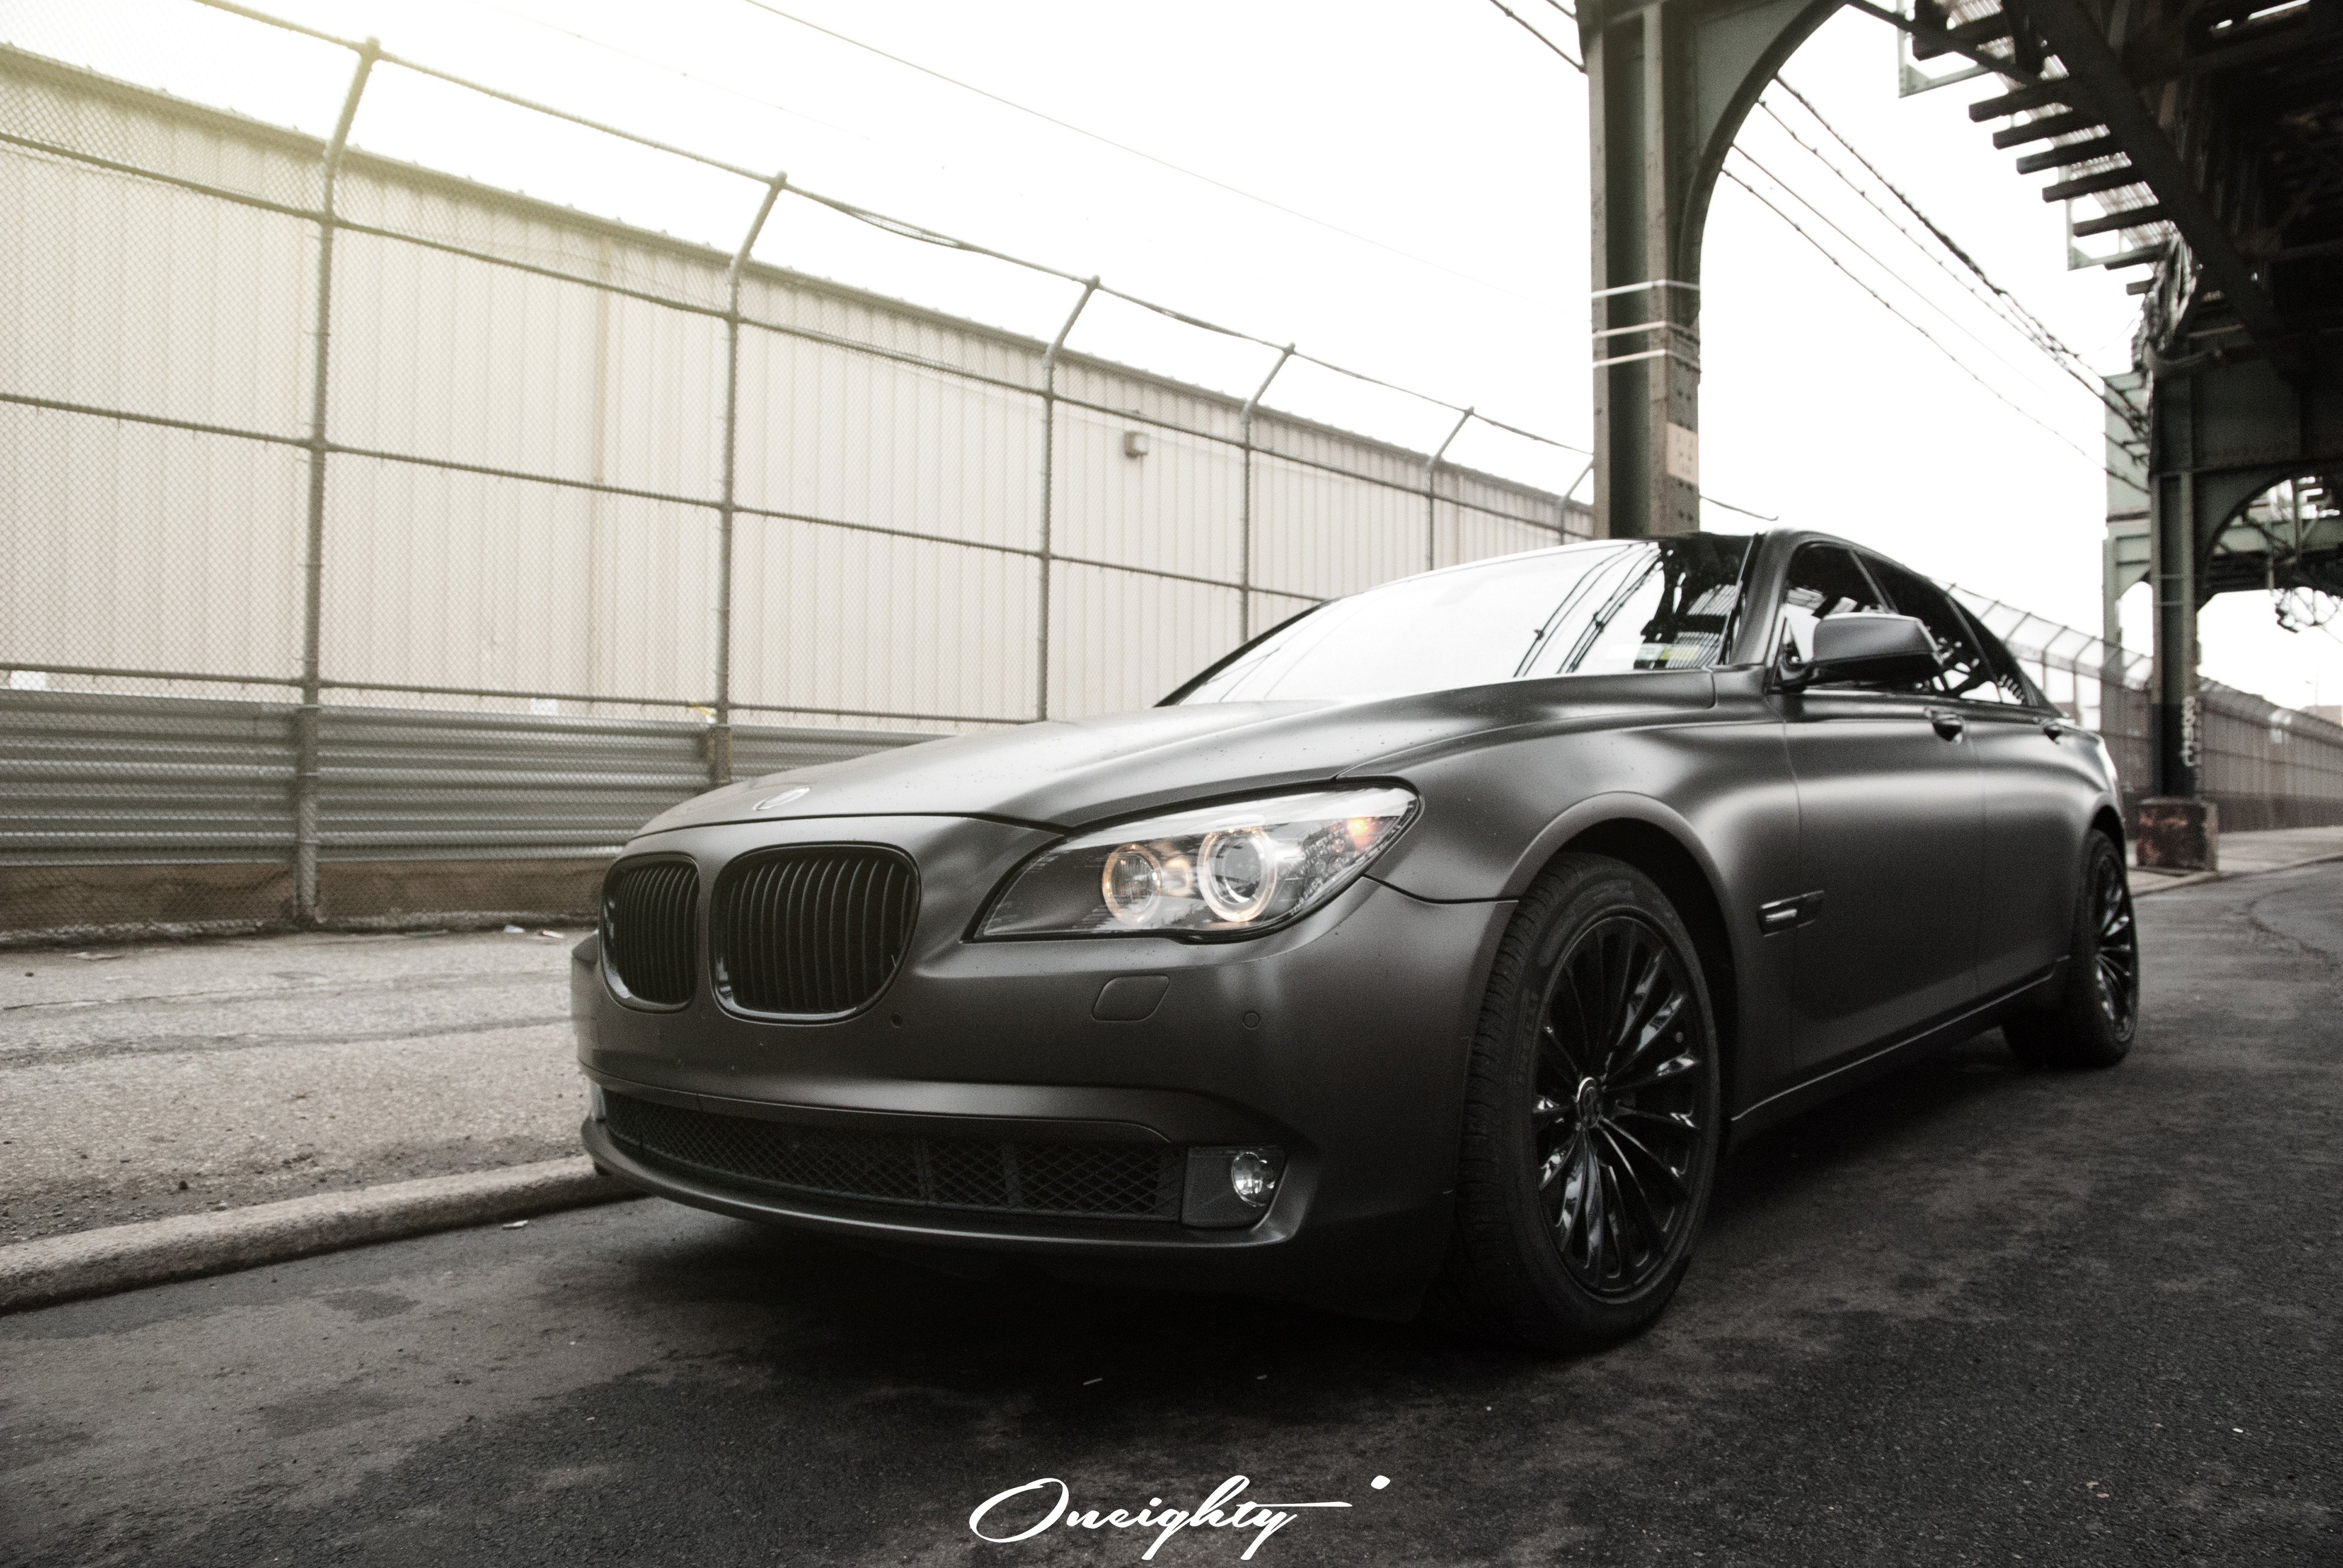 Custom 2015 Bmw 7 Series Images Mods Photos Upgrades Carid Com Gallery